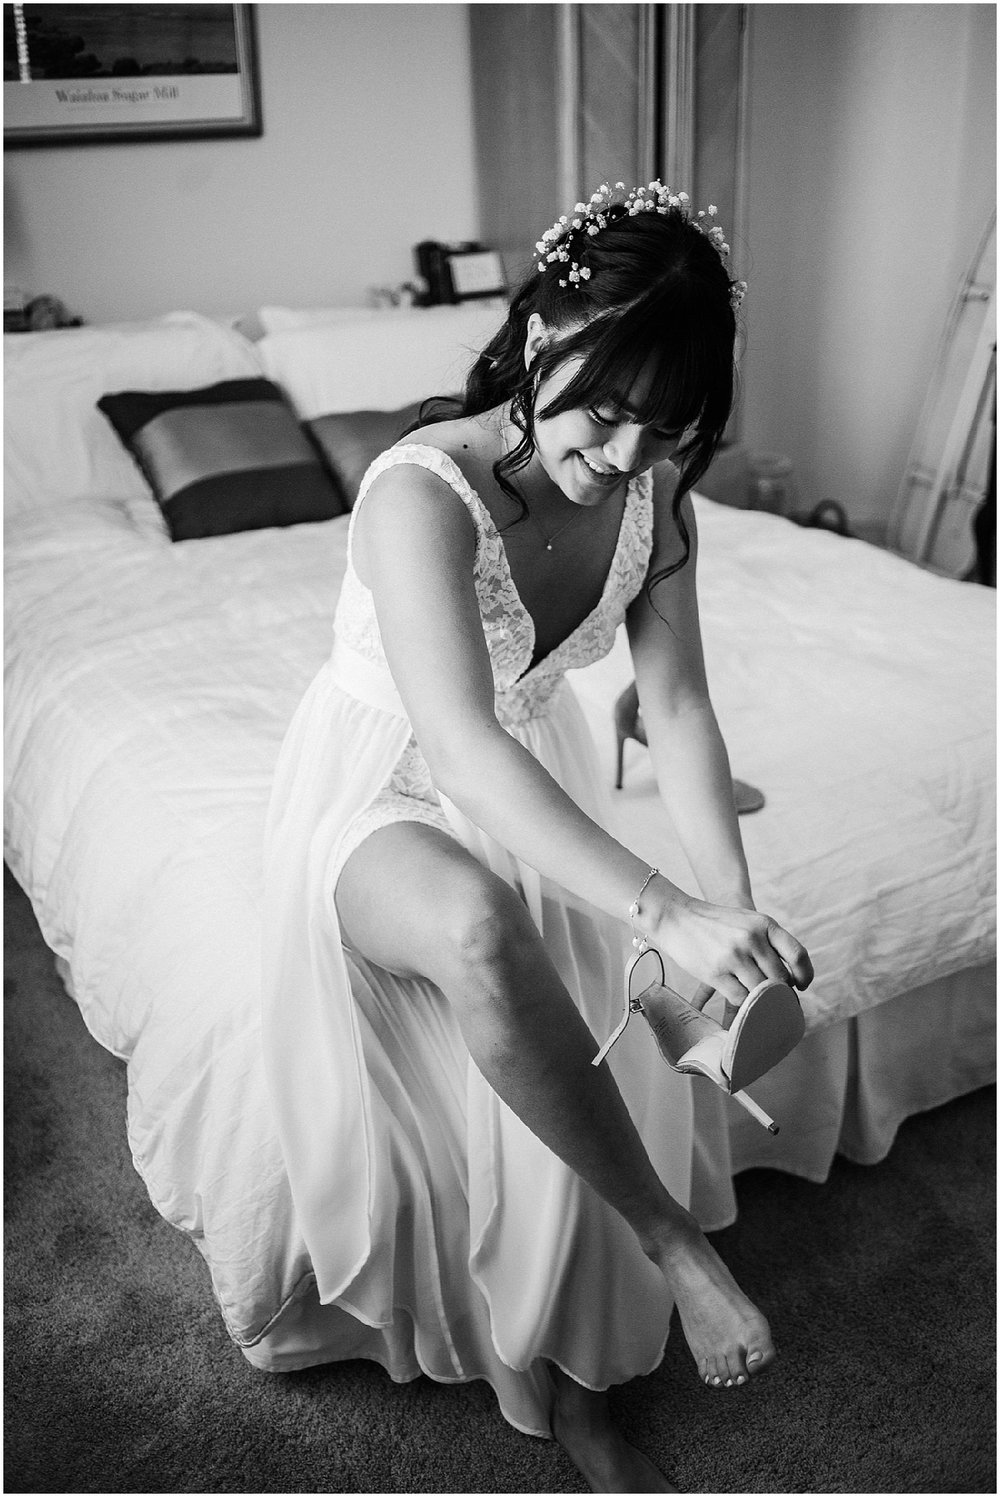 Bridal Style Inspiration at this Backyard Albuquerque Elopement | Downtown Contemporary Art Studio | Albuquerque, New Mexico | Jasper K Photography